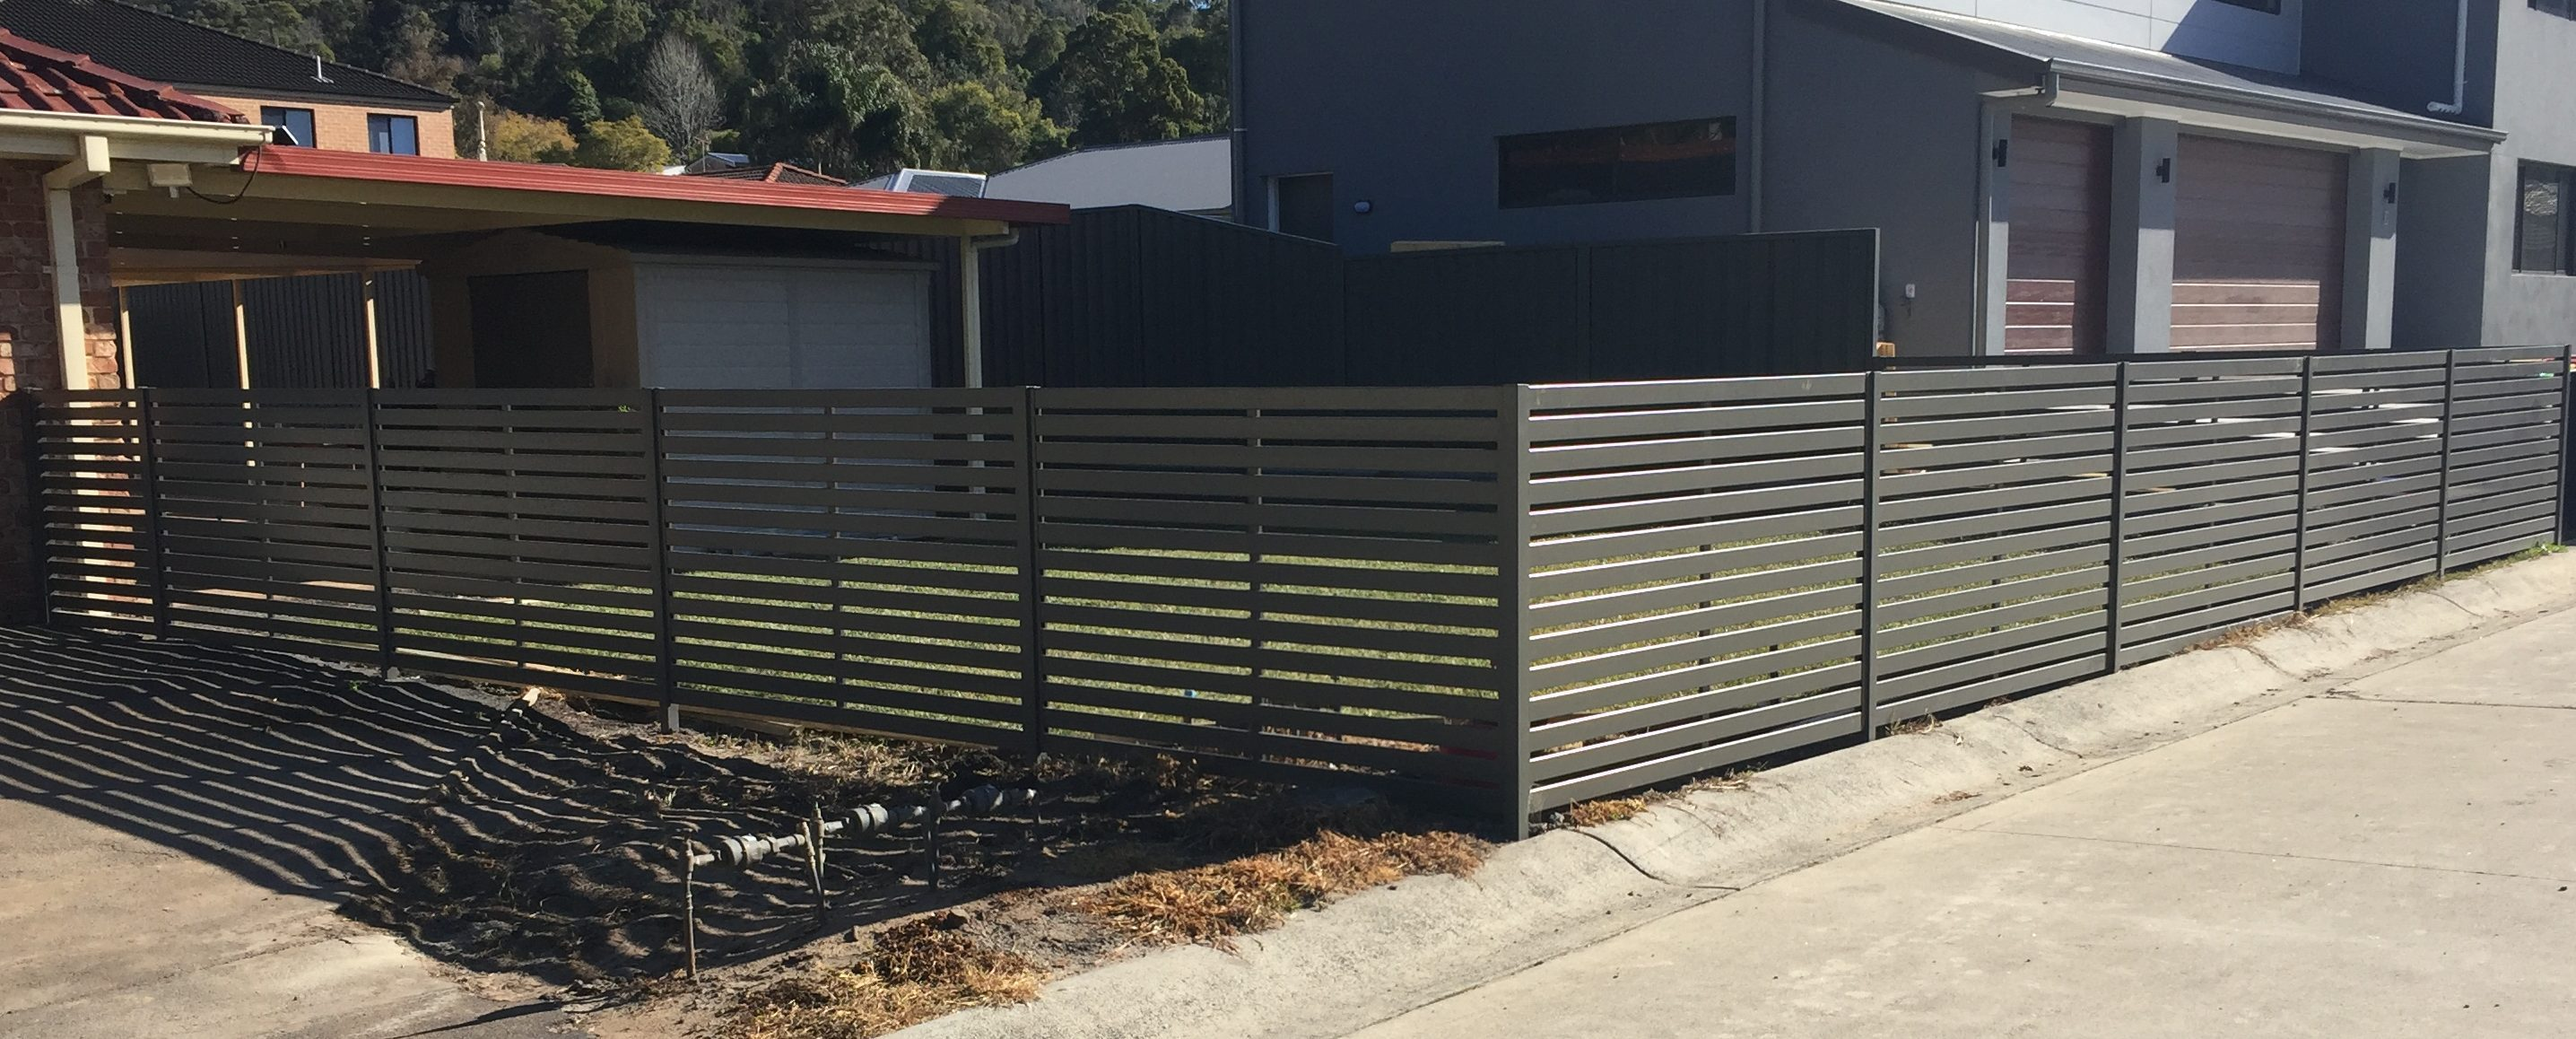 Find Out About The Benefits And Different Types Of Slat Fencing In Newcastle That One Can Use!